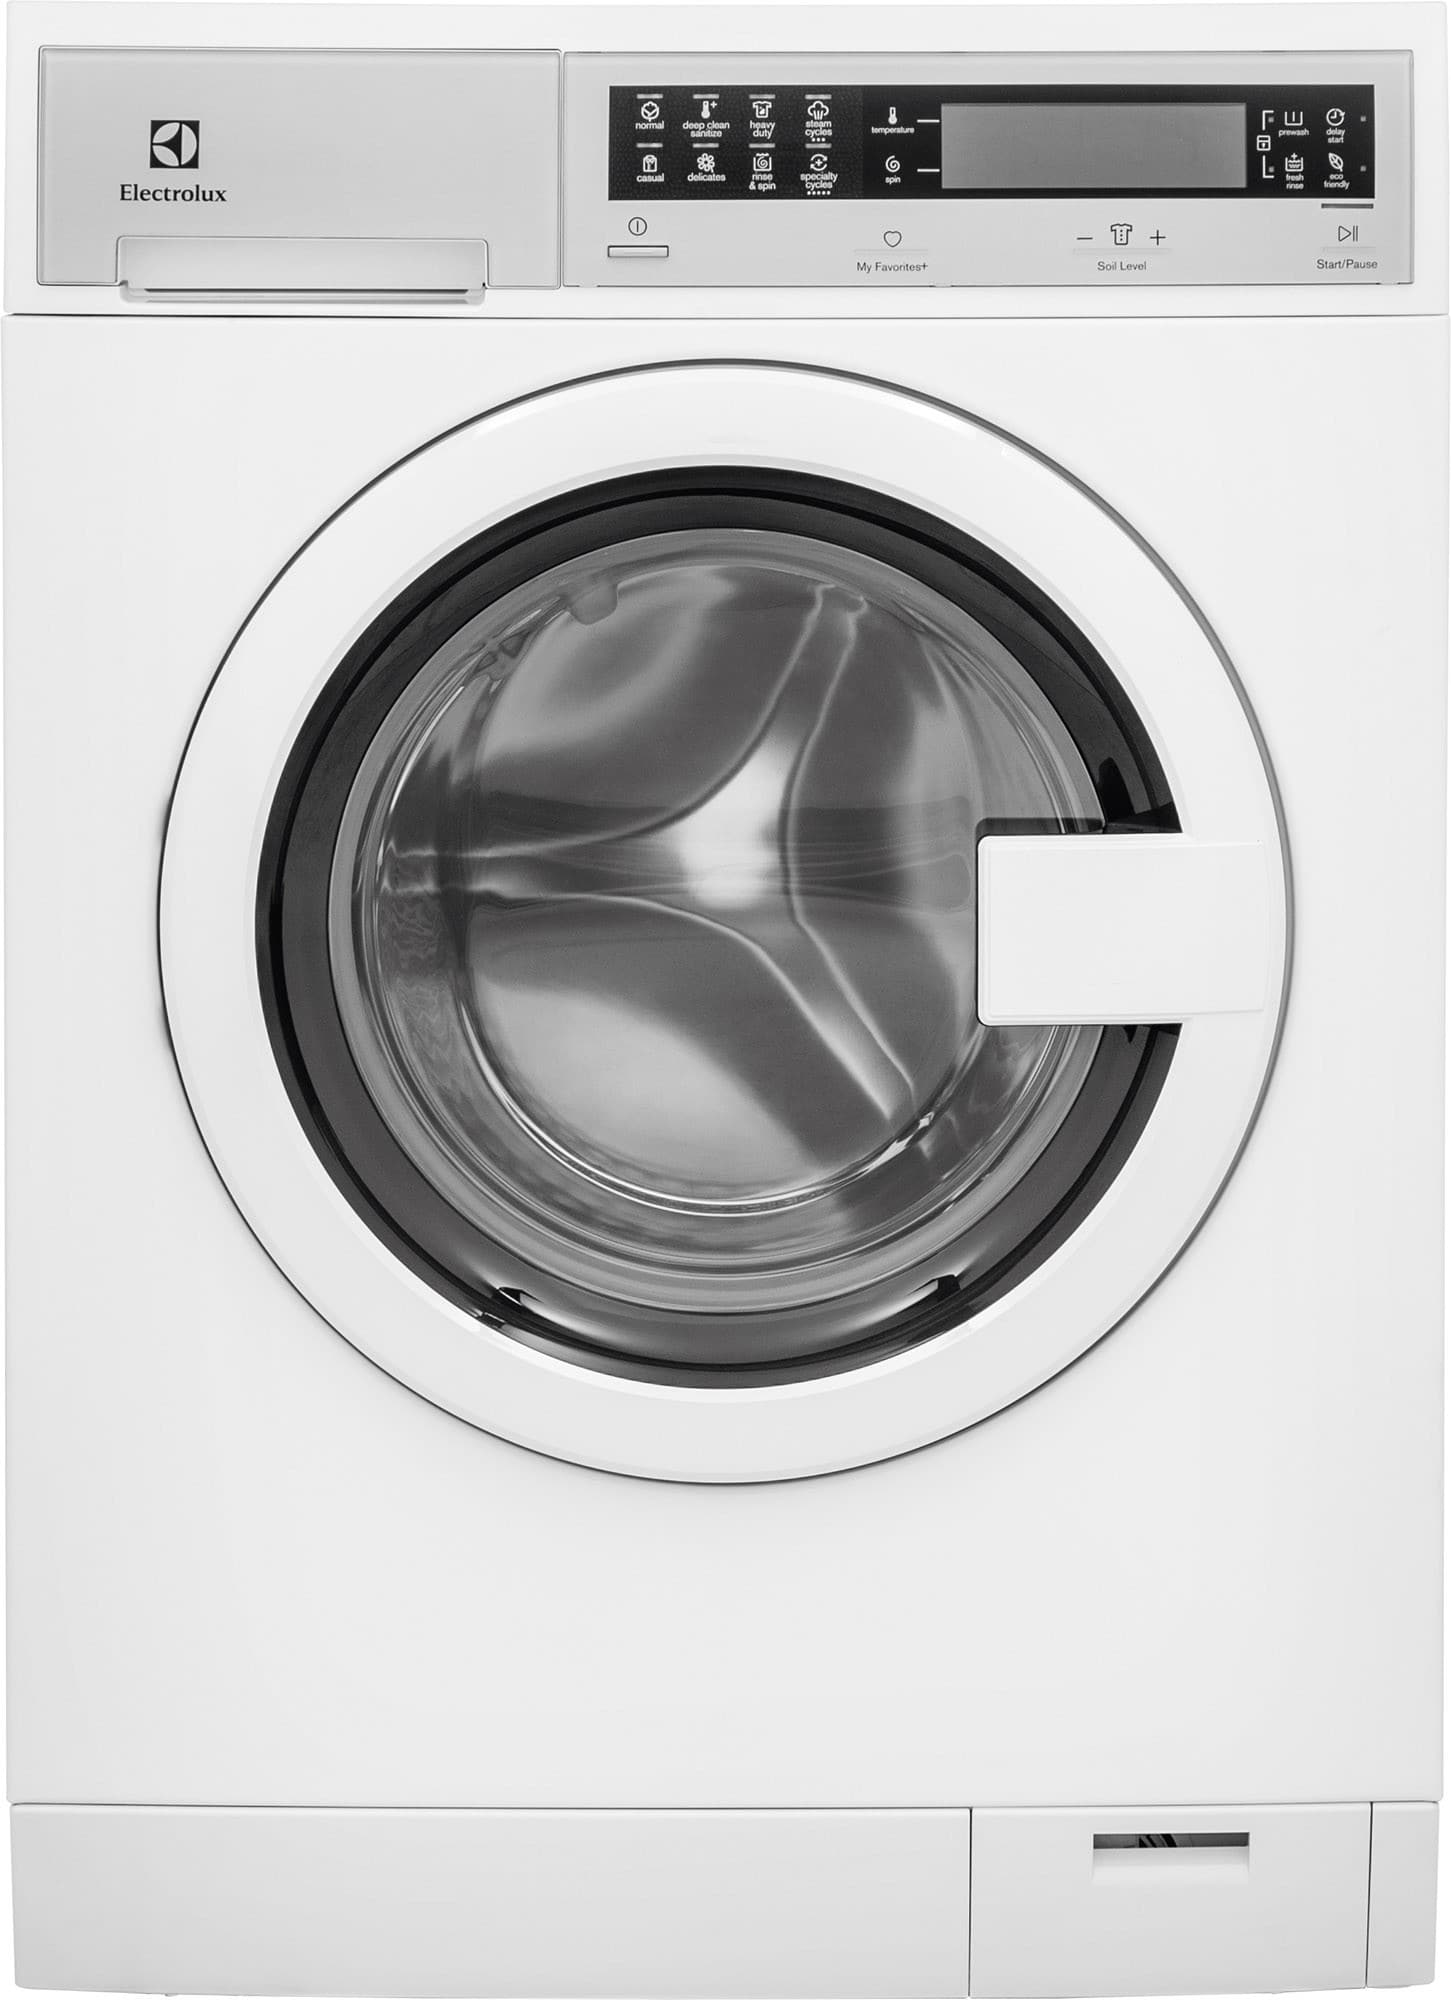 Washing Drying Machine Electrolux Eifls20qsw 24 Inch Front Load Washer With Steam Nsf